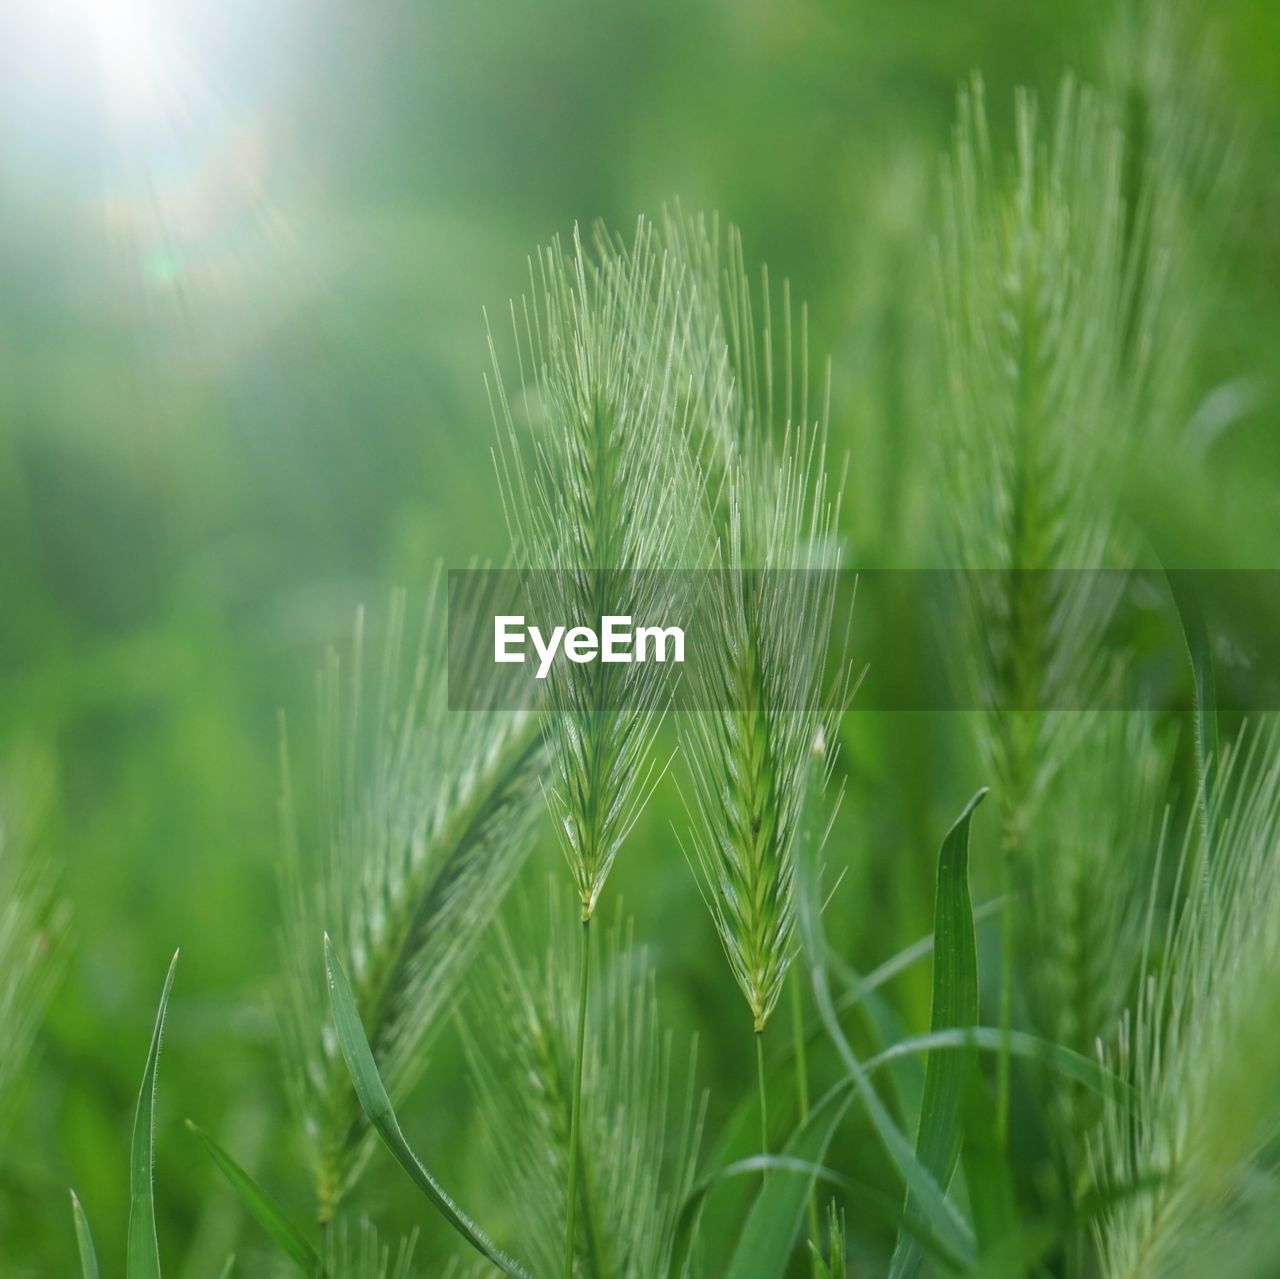 green color, growth, plant, nature, close-up, beauty in nature, no people, day, selective focus, sunlight, field, tranquility, focus on foreground, agriculture, outdoors, land, freshness, crop, grass, cereal plant